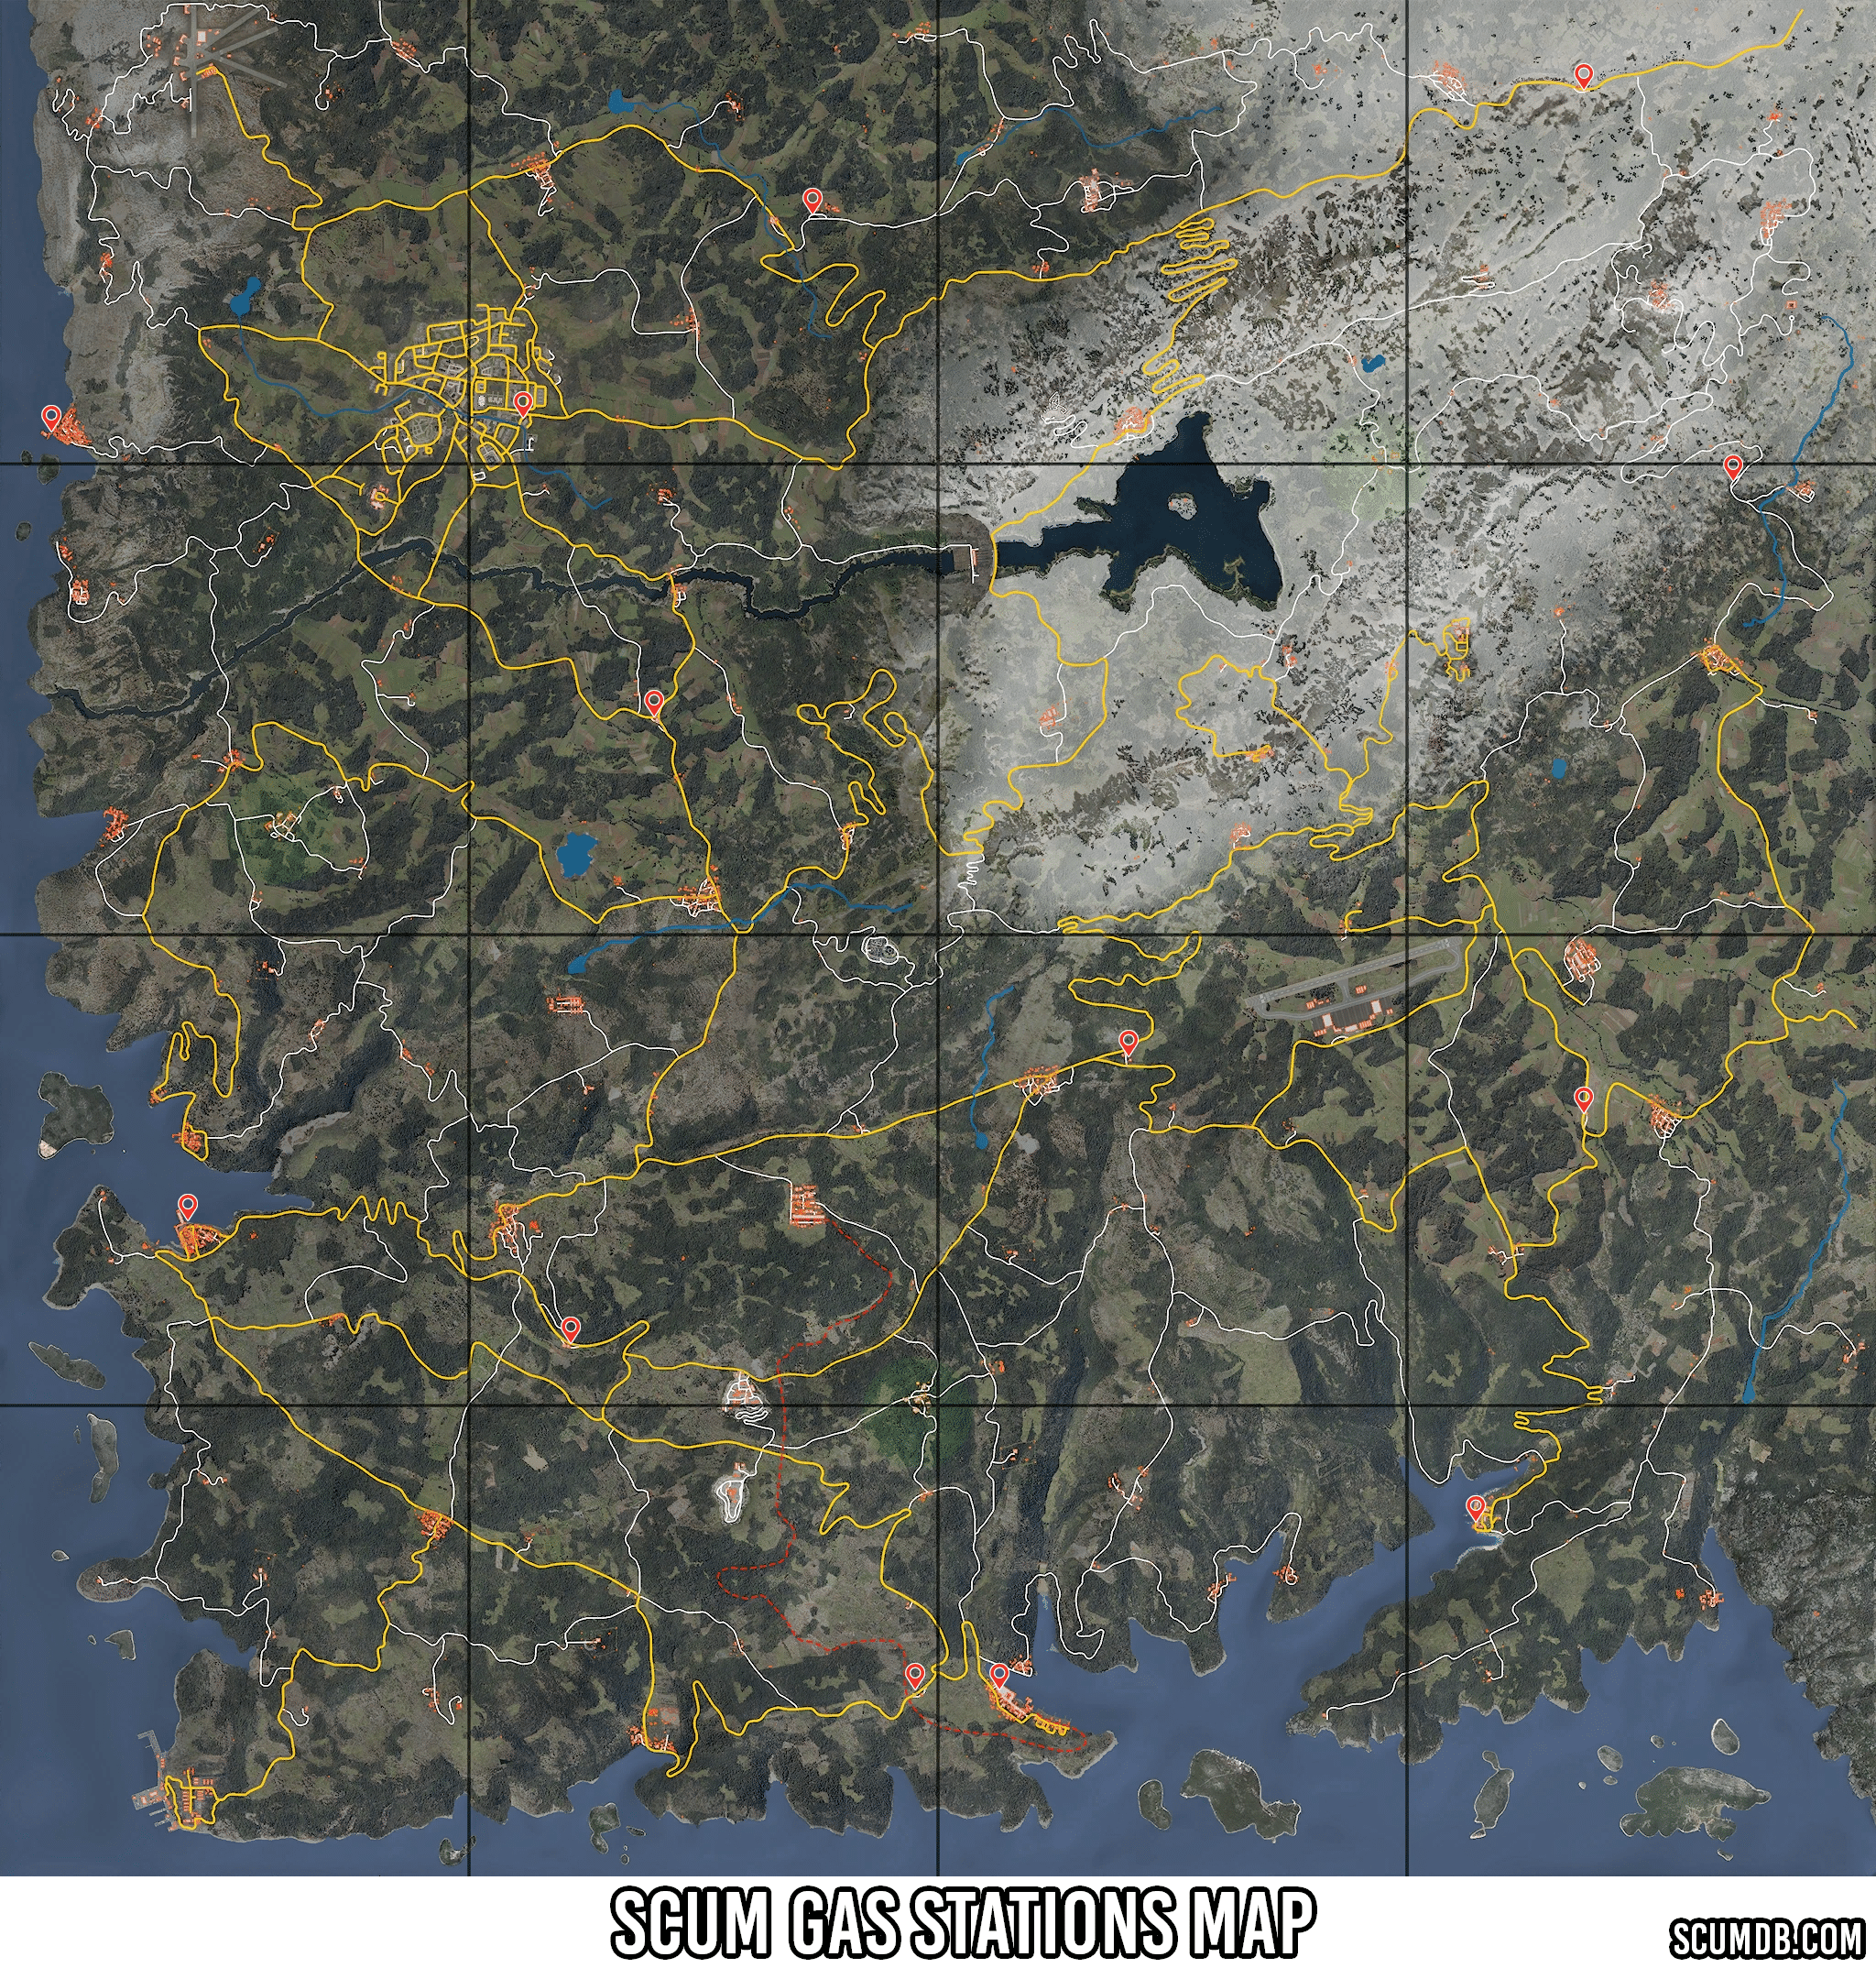 Scum Gas Station Locations Map